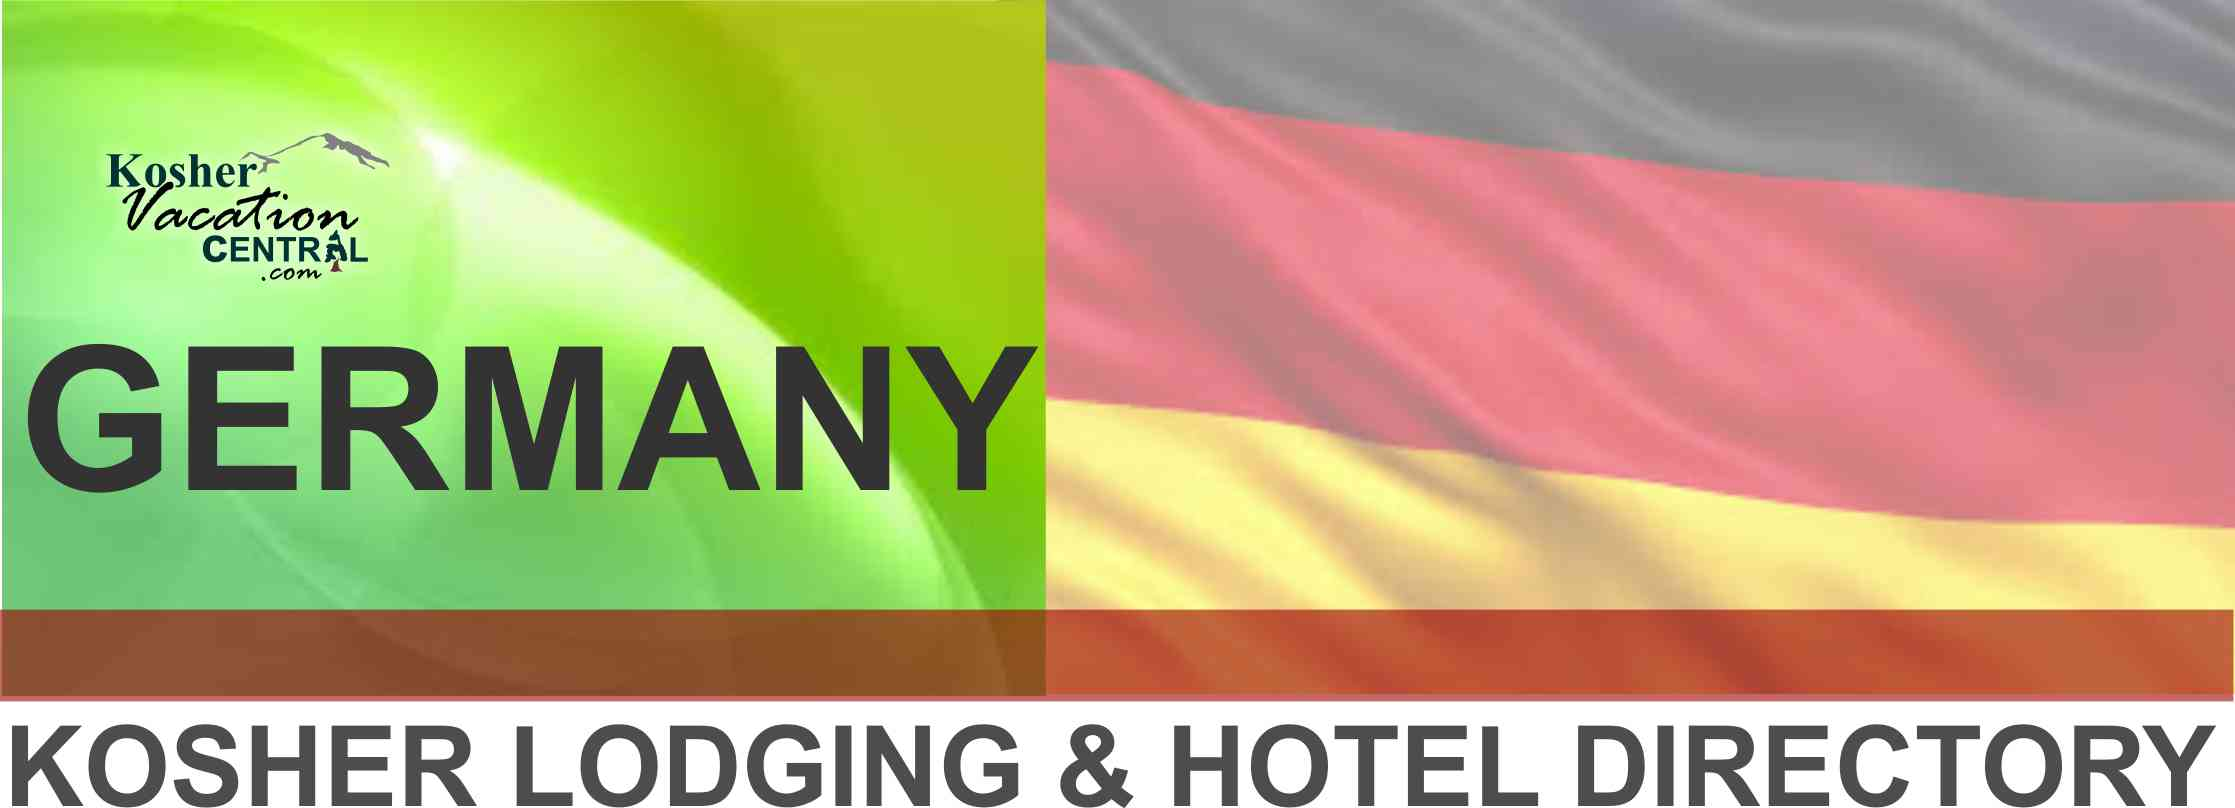 Germany Got It Here S A List Of Kosher Hotels Restaurants